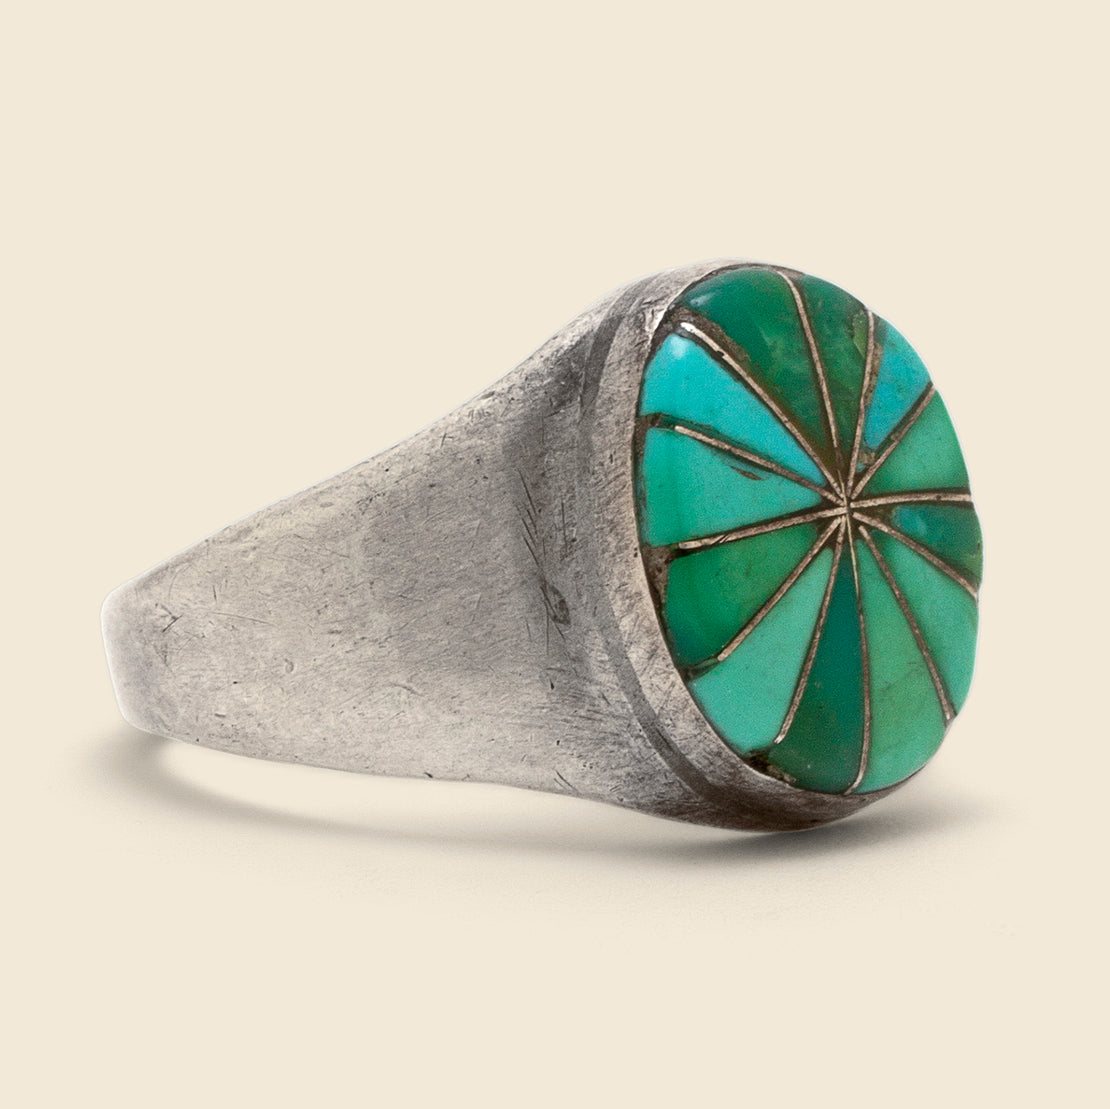 Vintage Pinwheel Inlay Turquoise Ring - Sterling